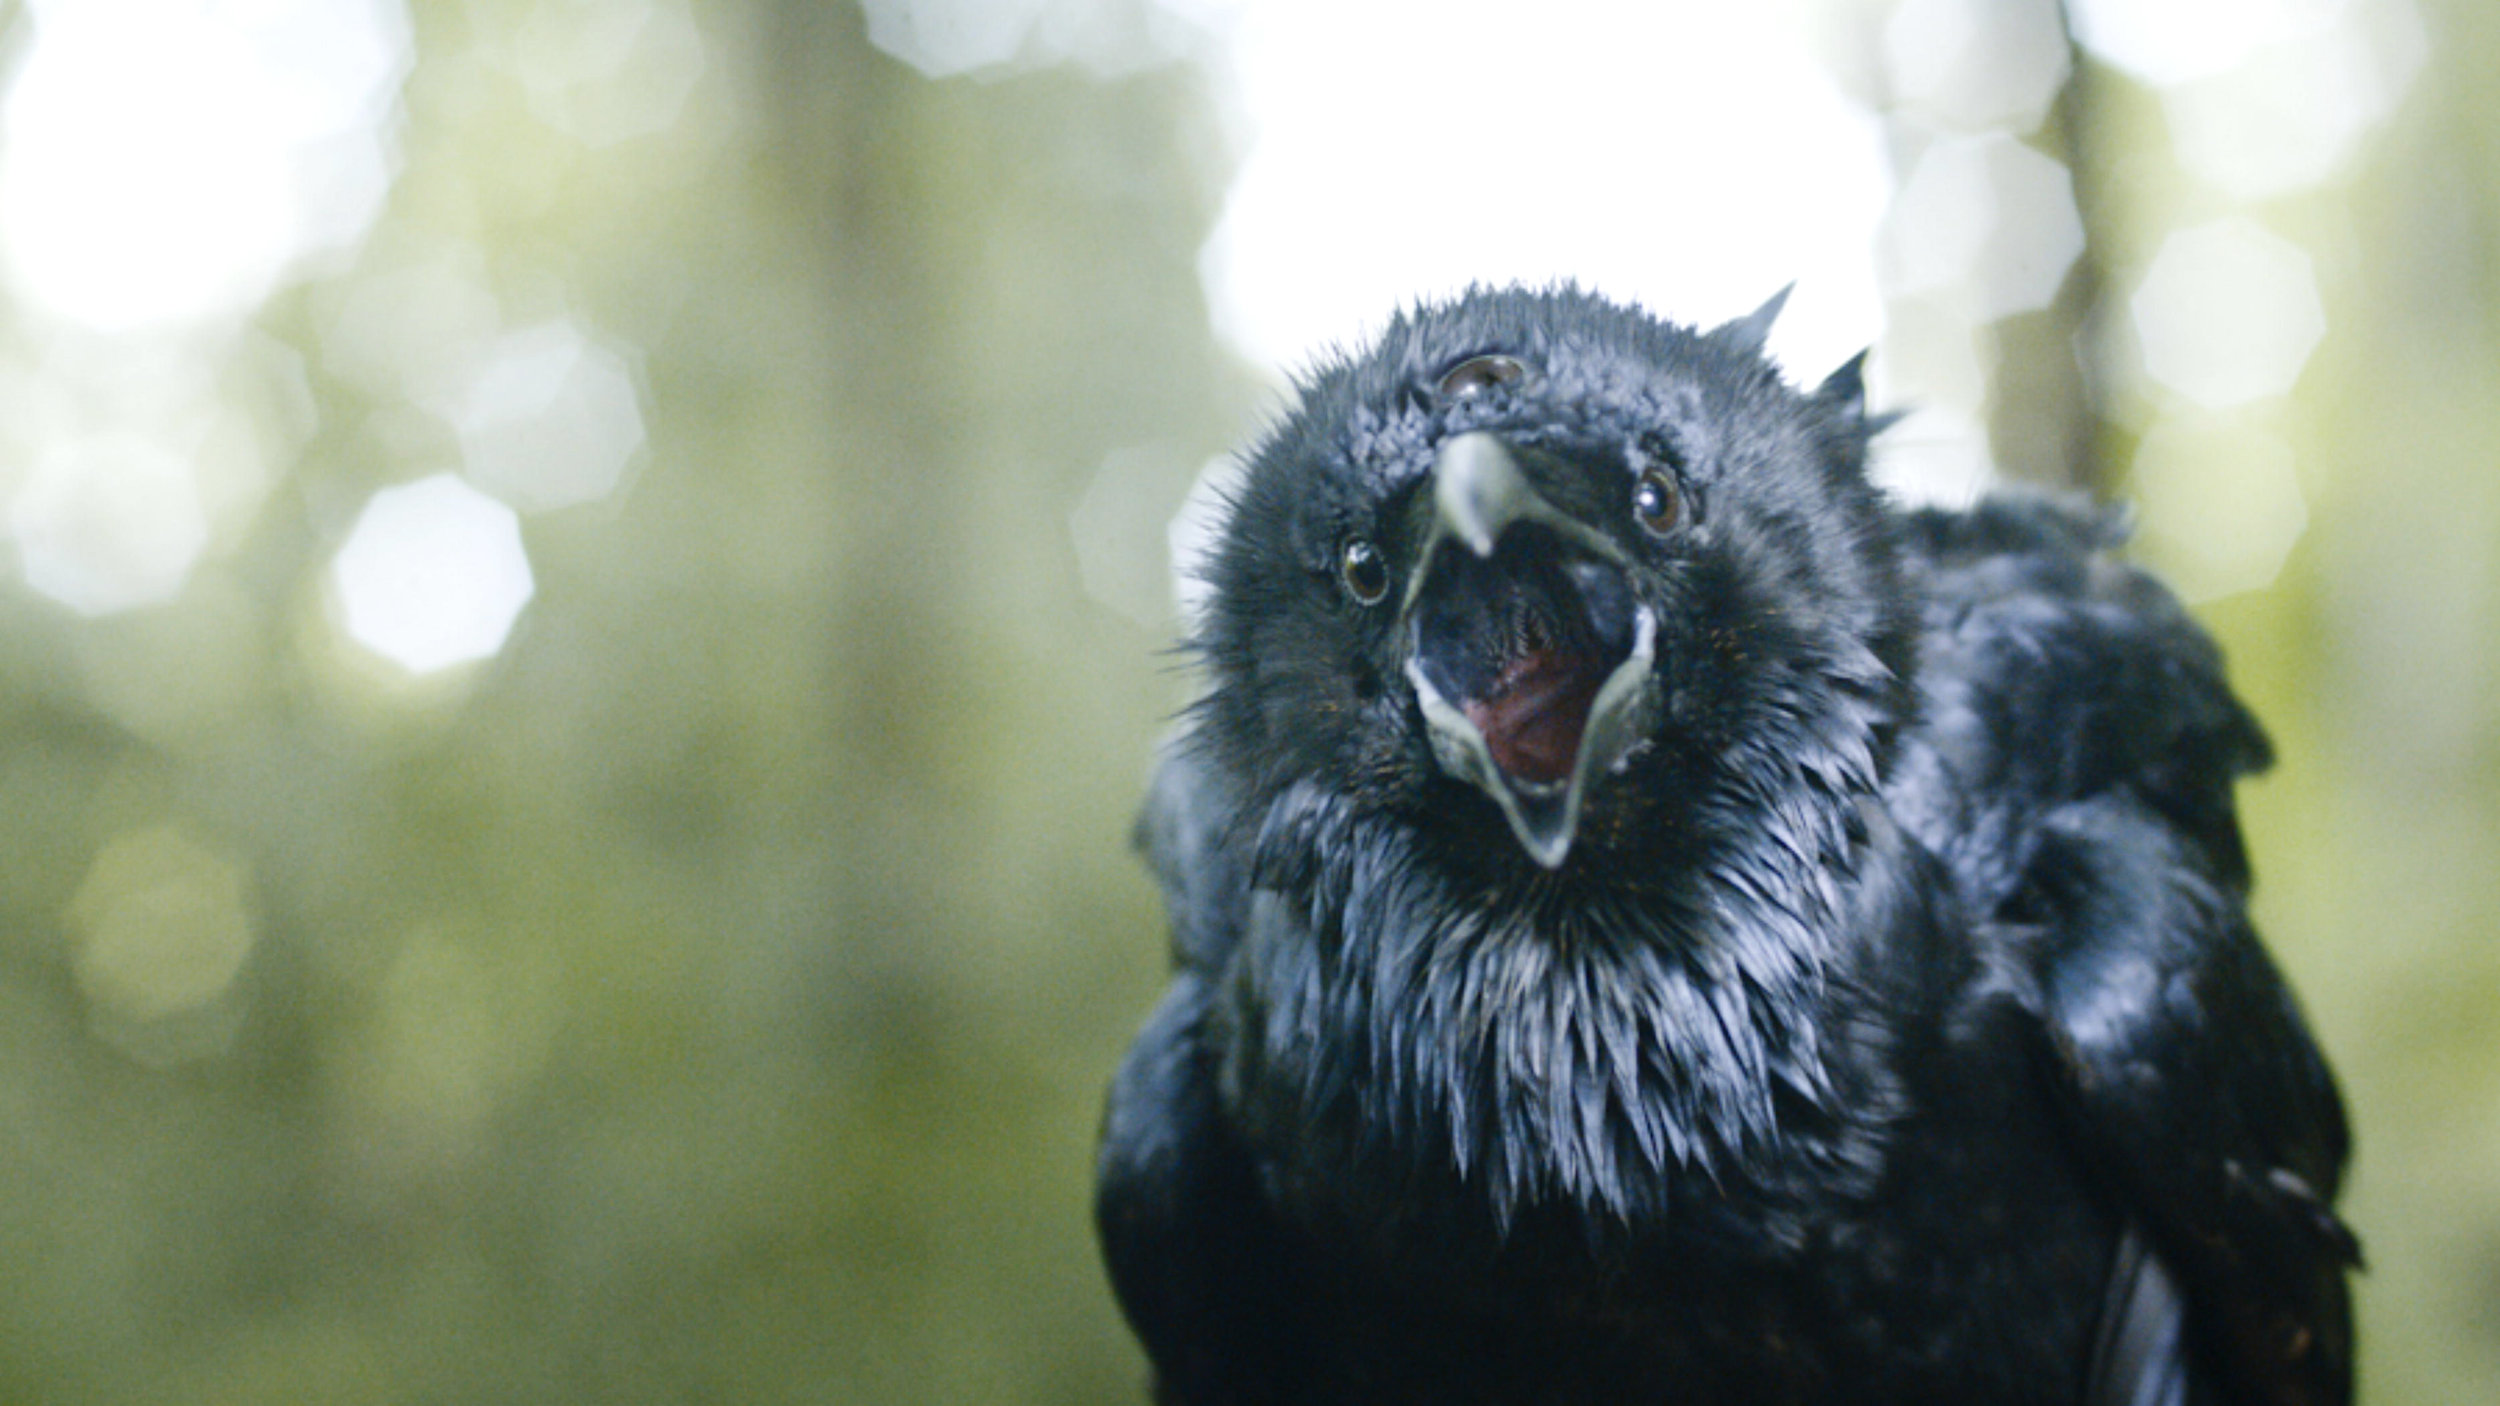 Copy of Raven, Game of Thrones